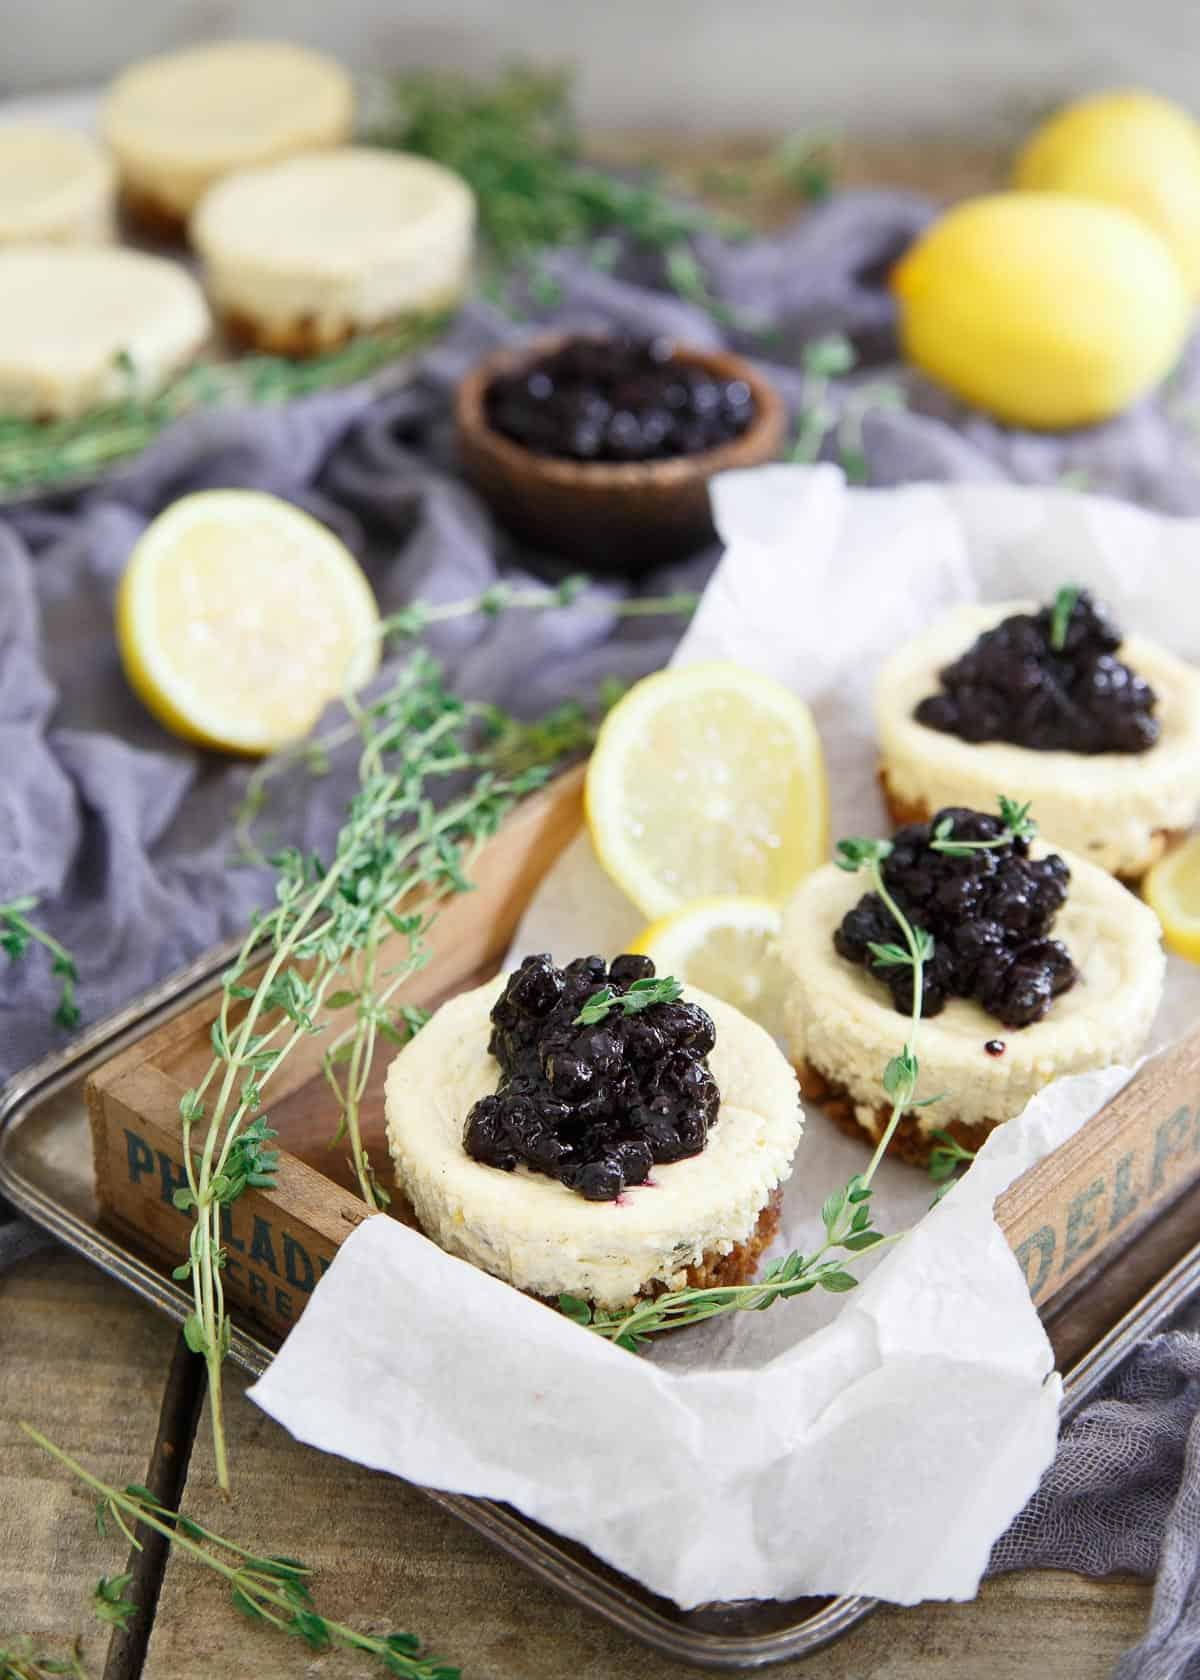 These gluten free granola crust mini cheesecakes are infused with lemon and thyme and topped with a quick blueberry thyme compote.